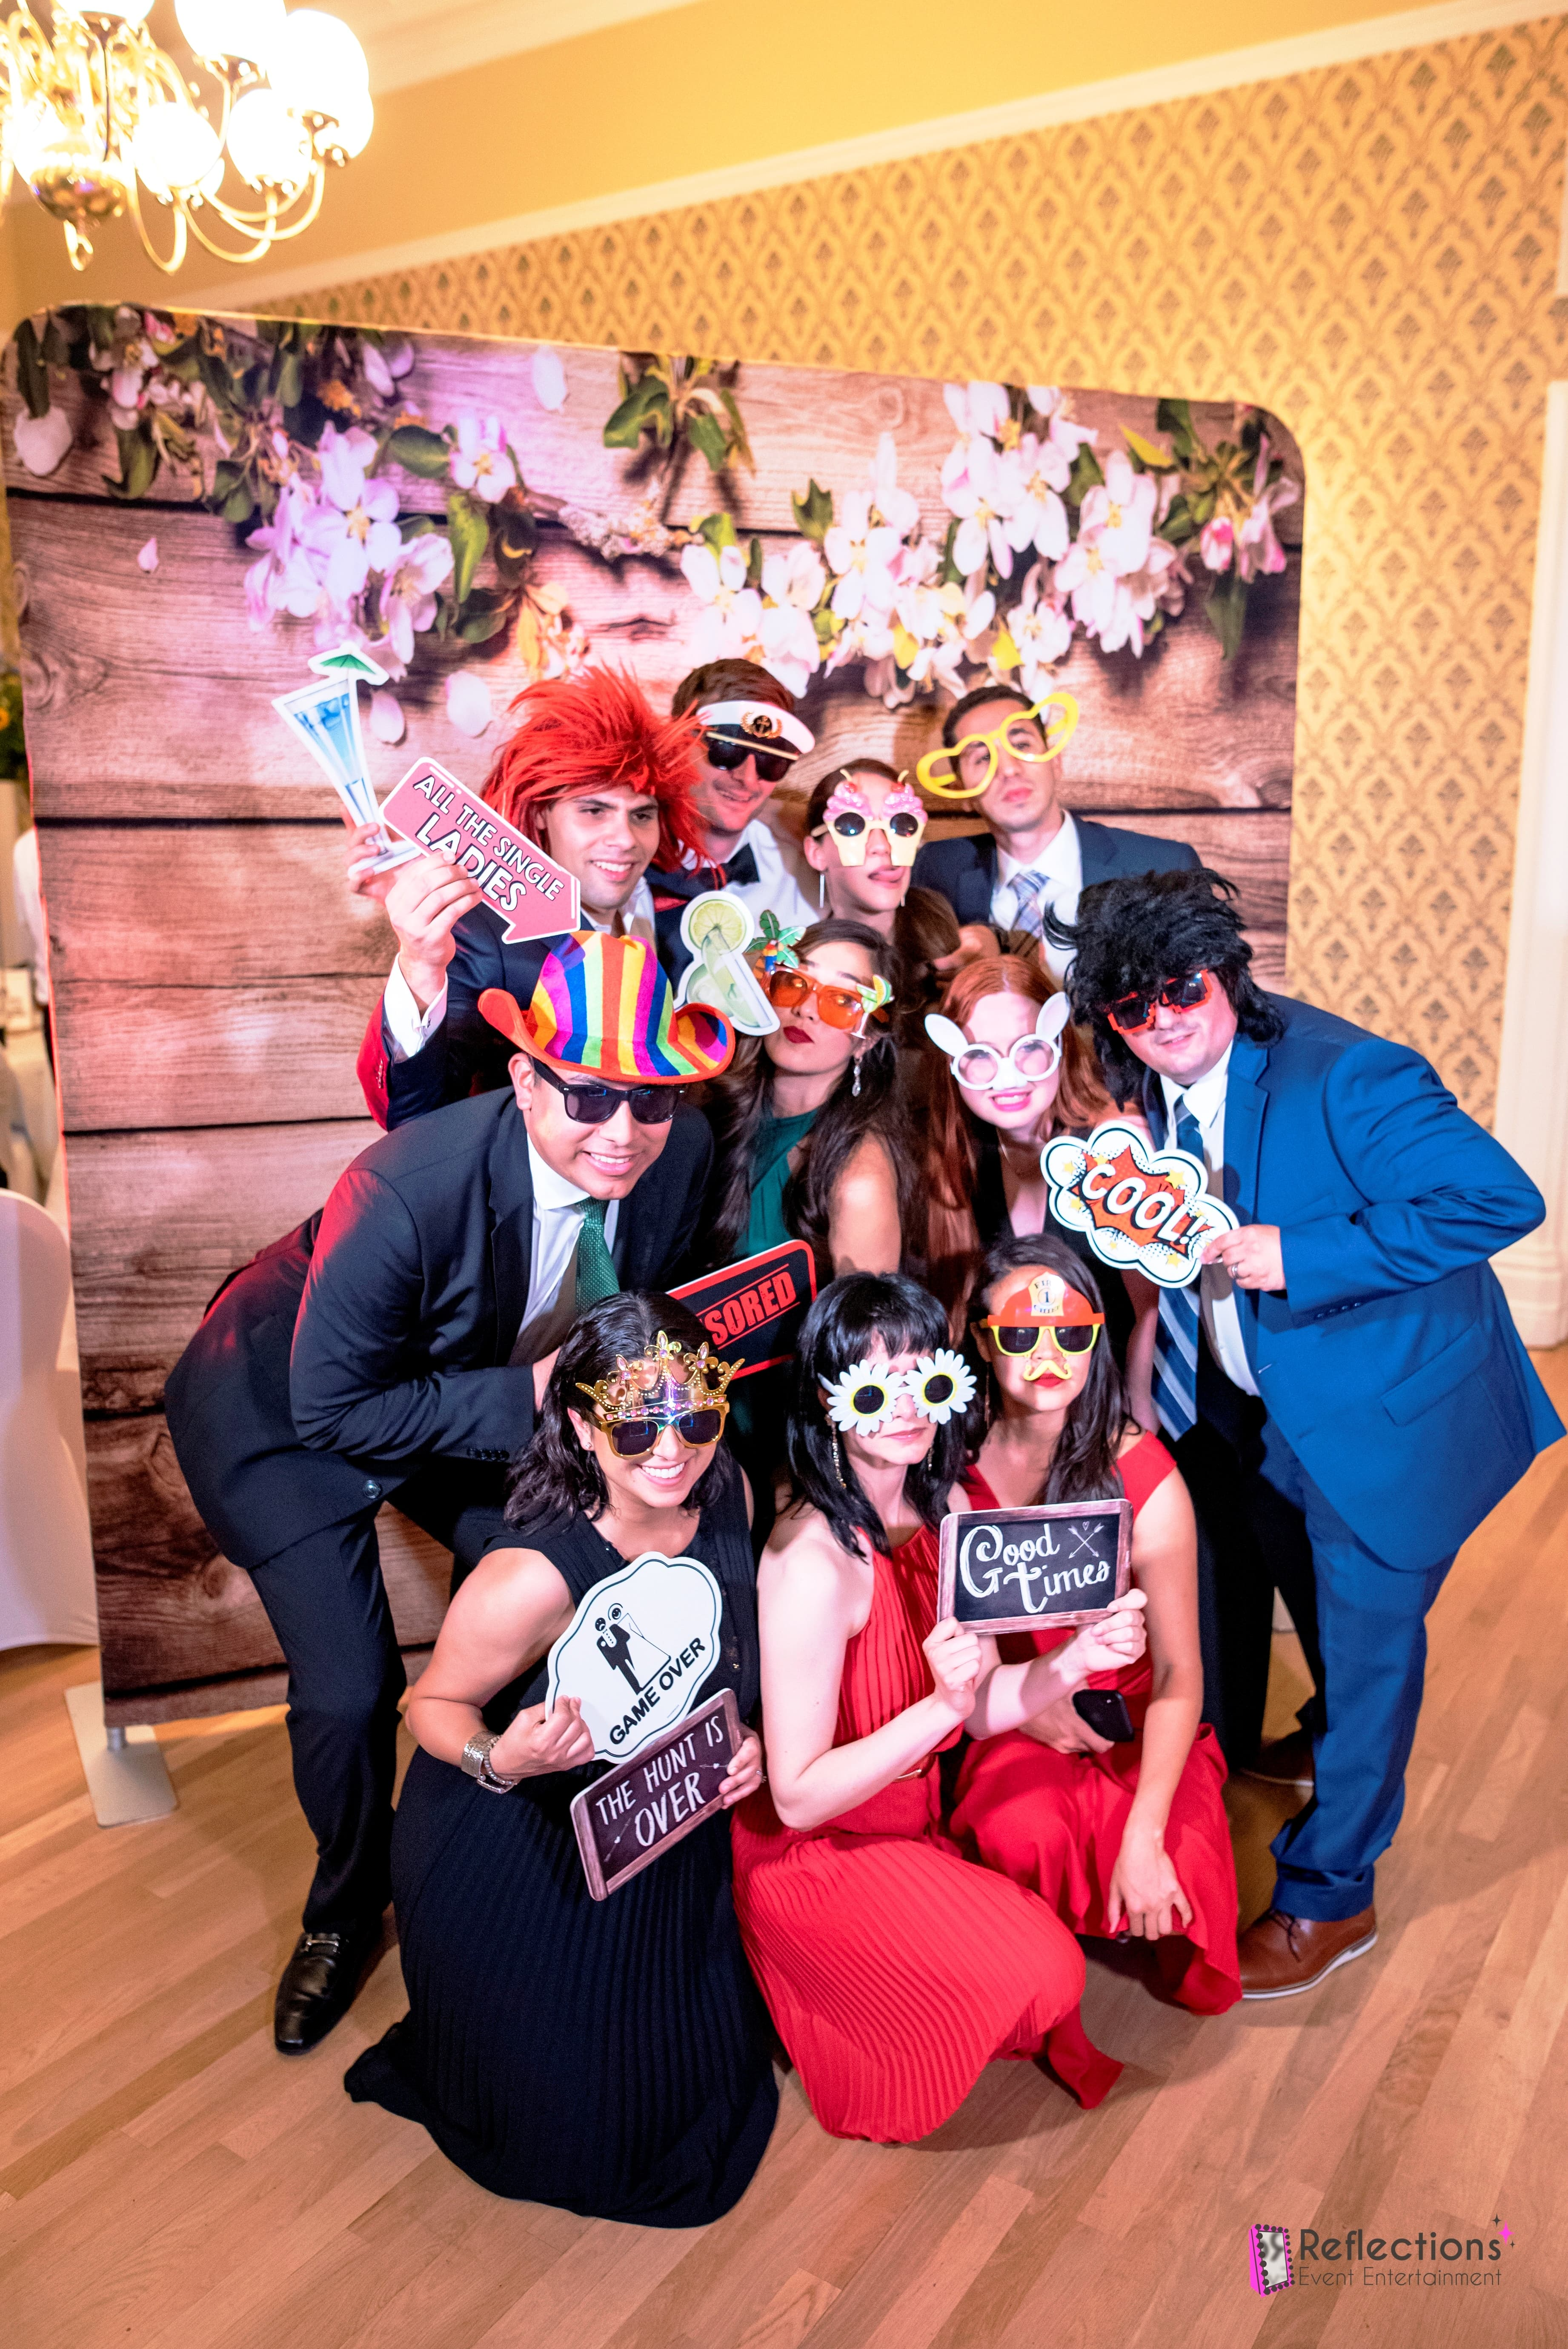 weddings, receptions, magic mirror photo booth